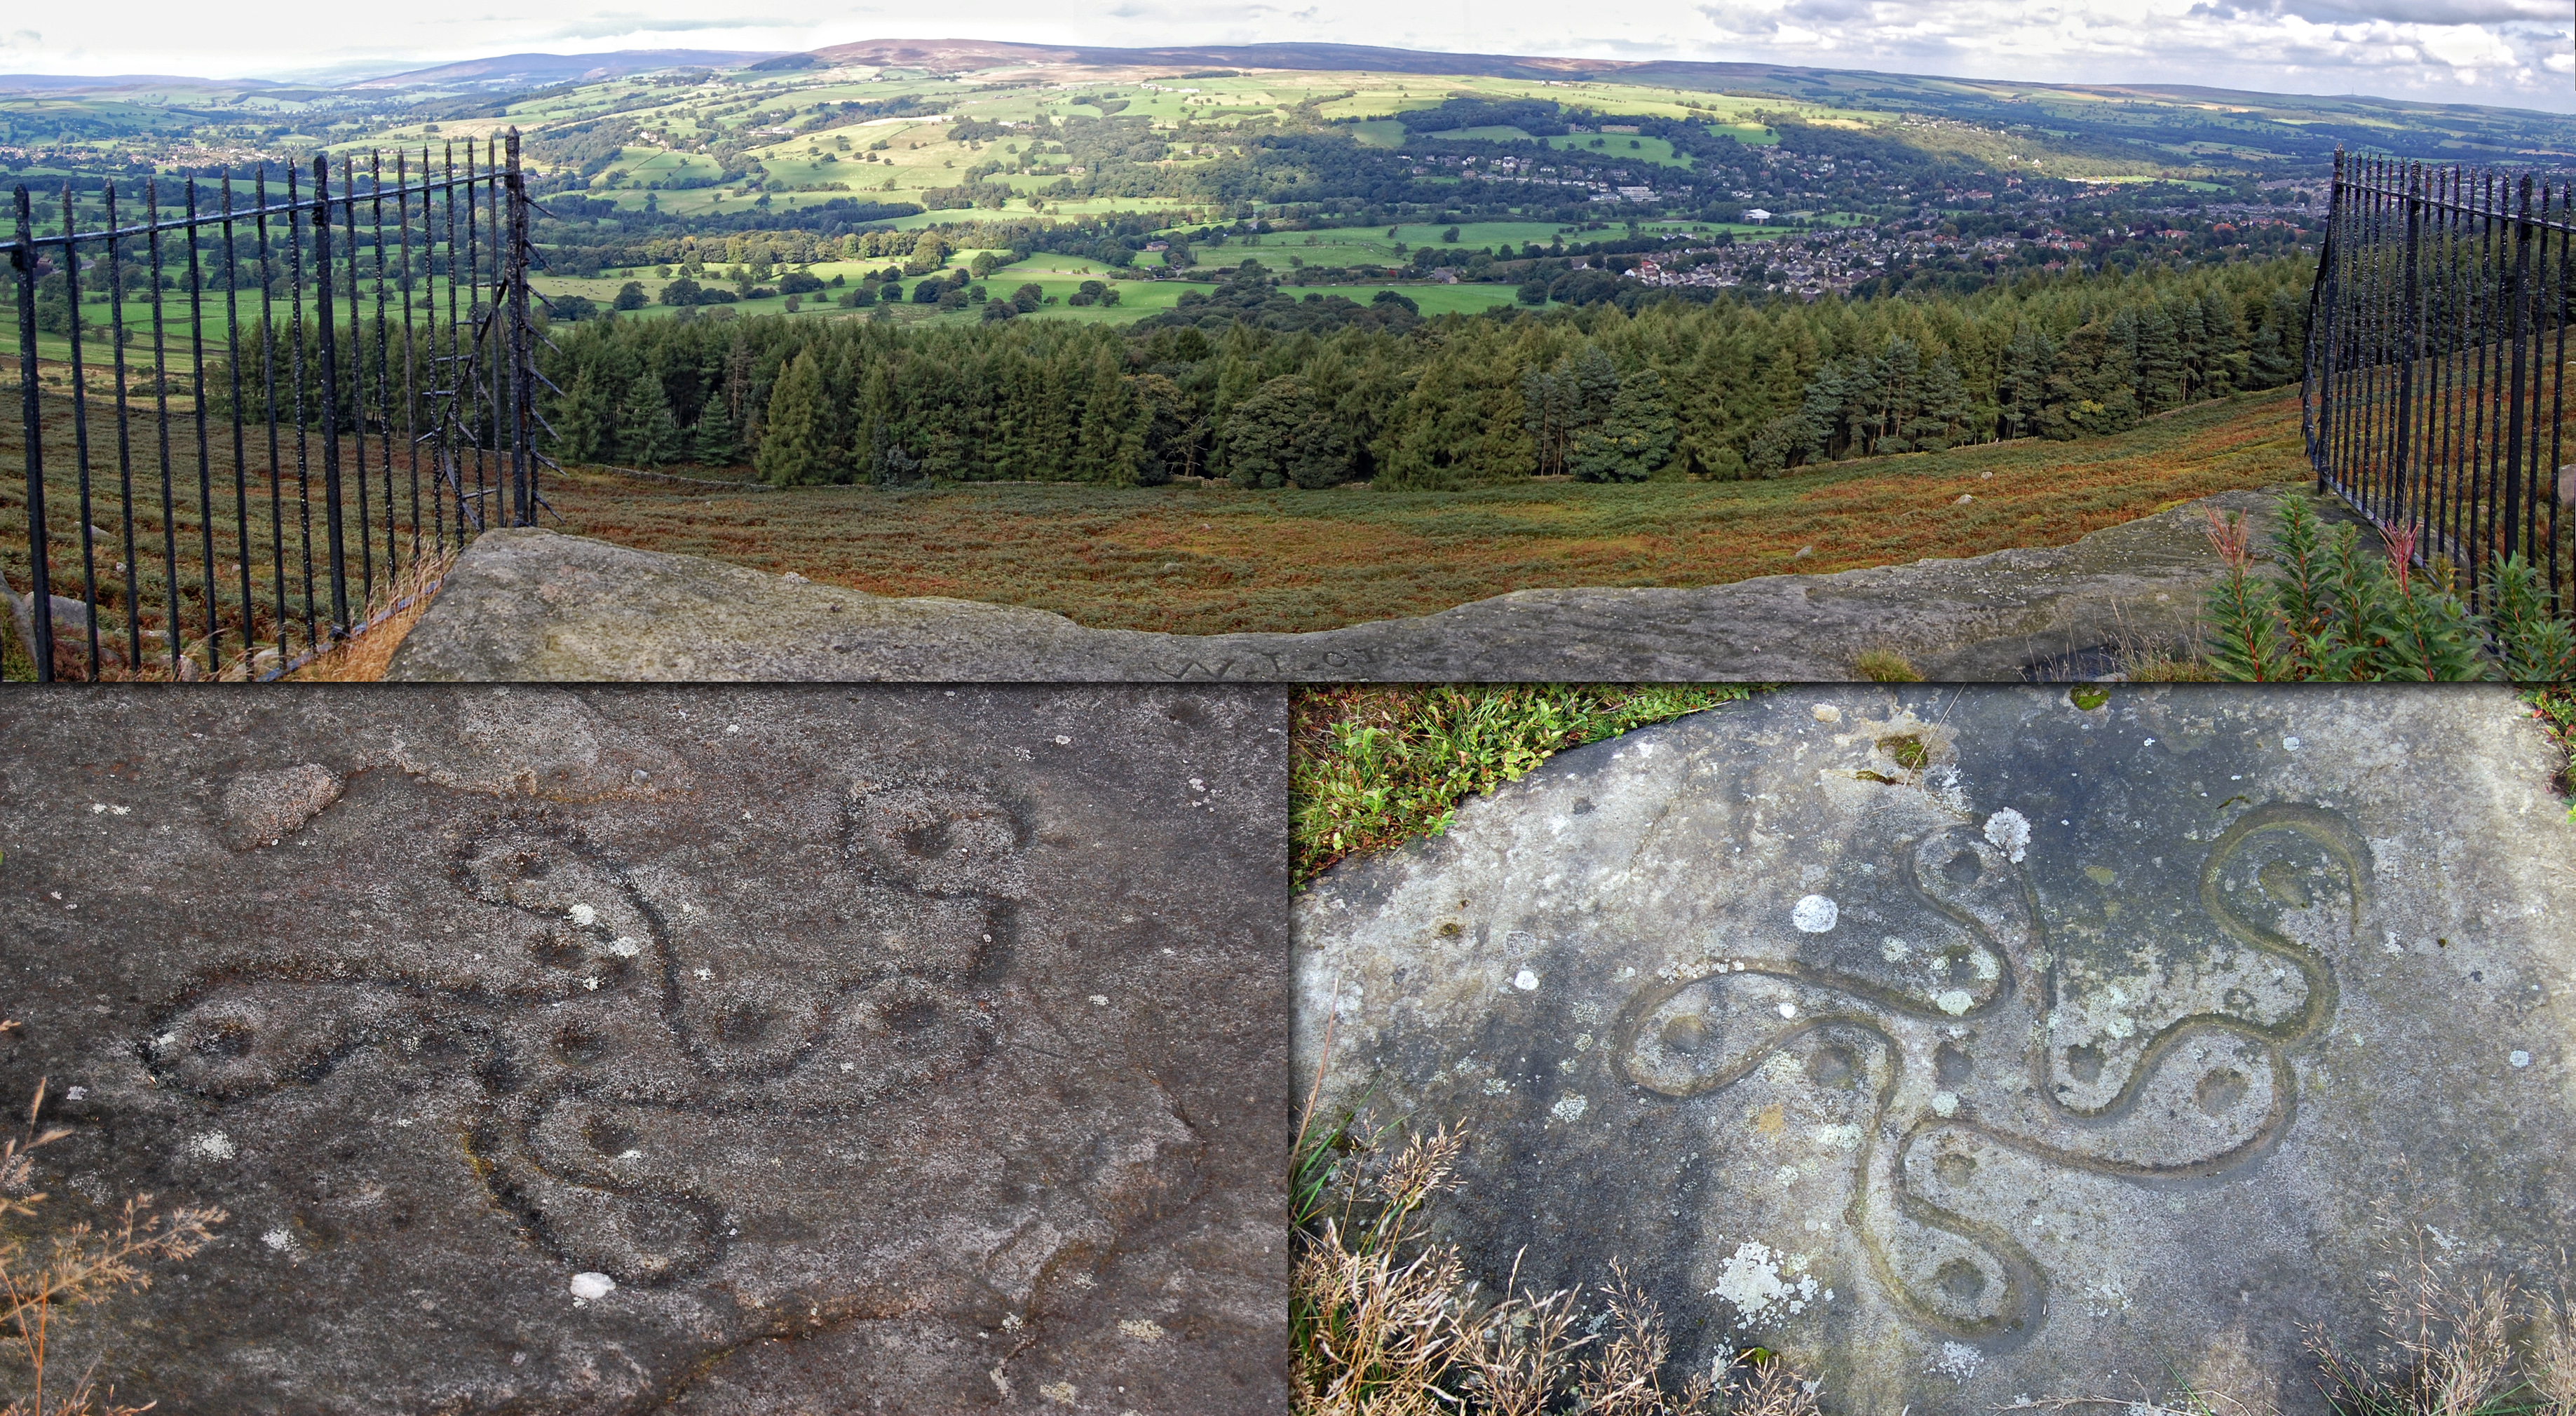 Wayne herschel author the hidden records discovered 35 it is thousands of years old as well and called the ilkley moor swastika stone ref here is the close up iimage reference biocorpaavc